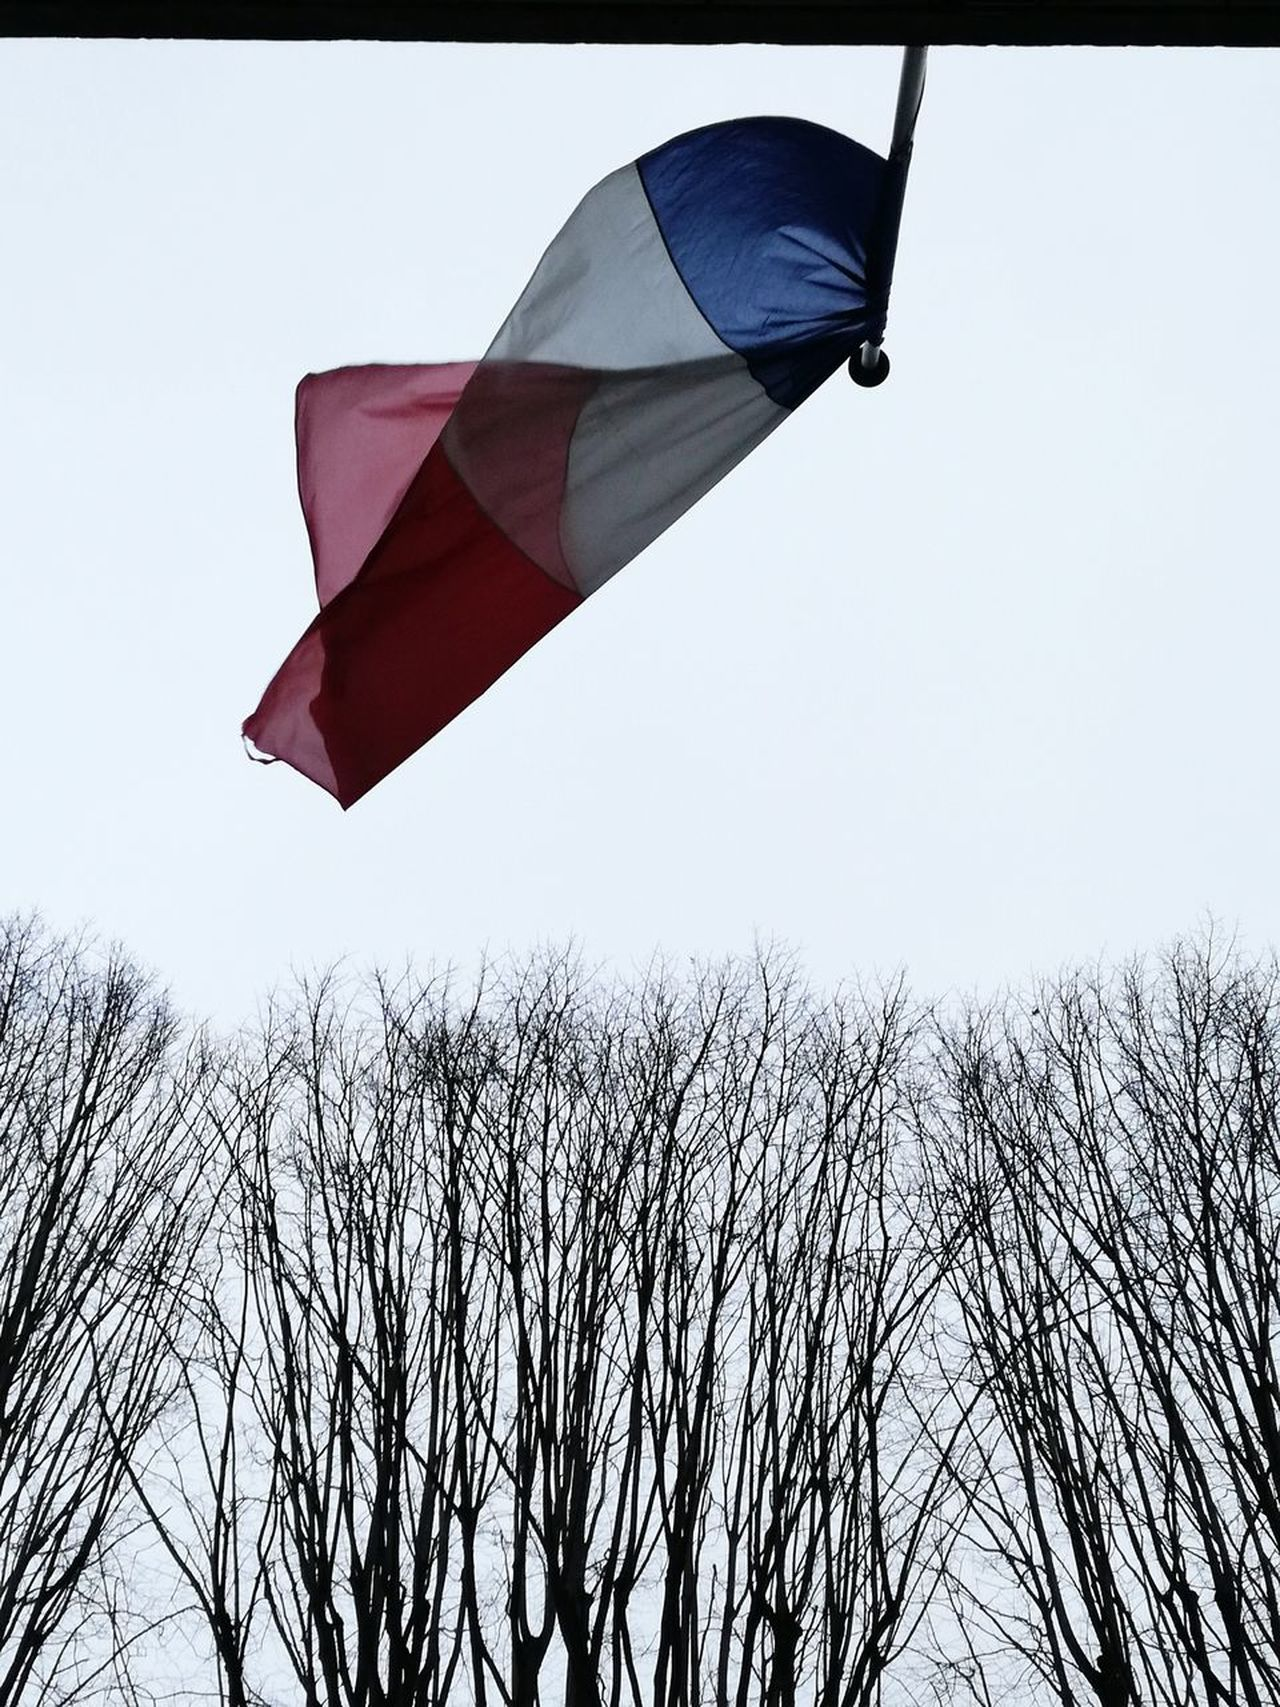 French Flag Drapeau Français Low Angle View Outdoors Trees Mairie Flag No People Day Sky